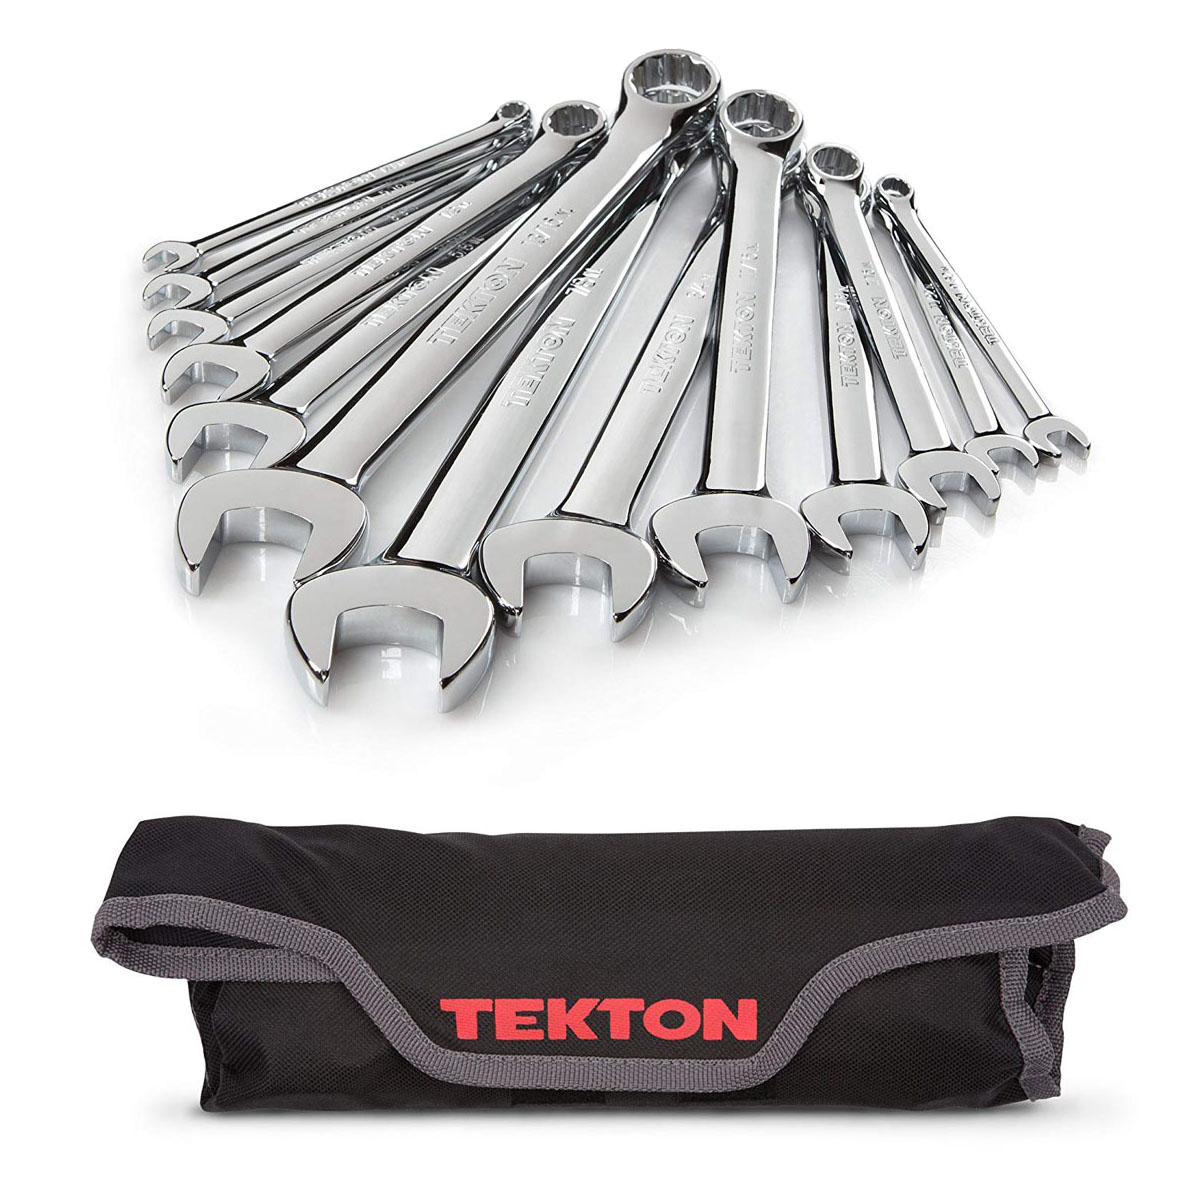 Inch, TEKTON WRN01086 Stubby Combination Wrench Set With Roll-Up Storage Pouch